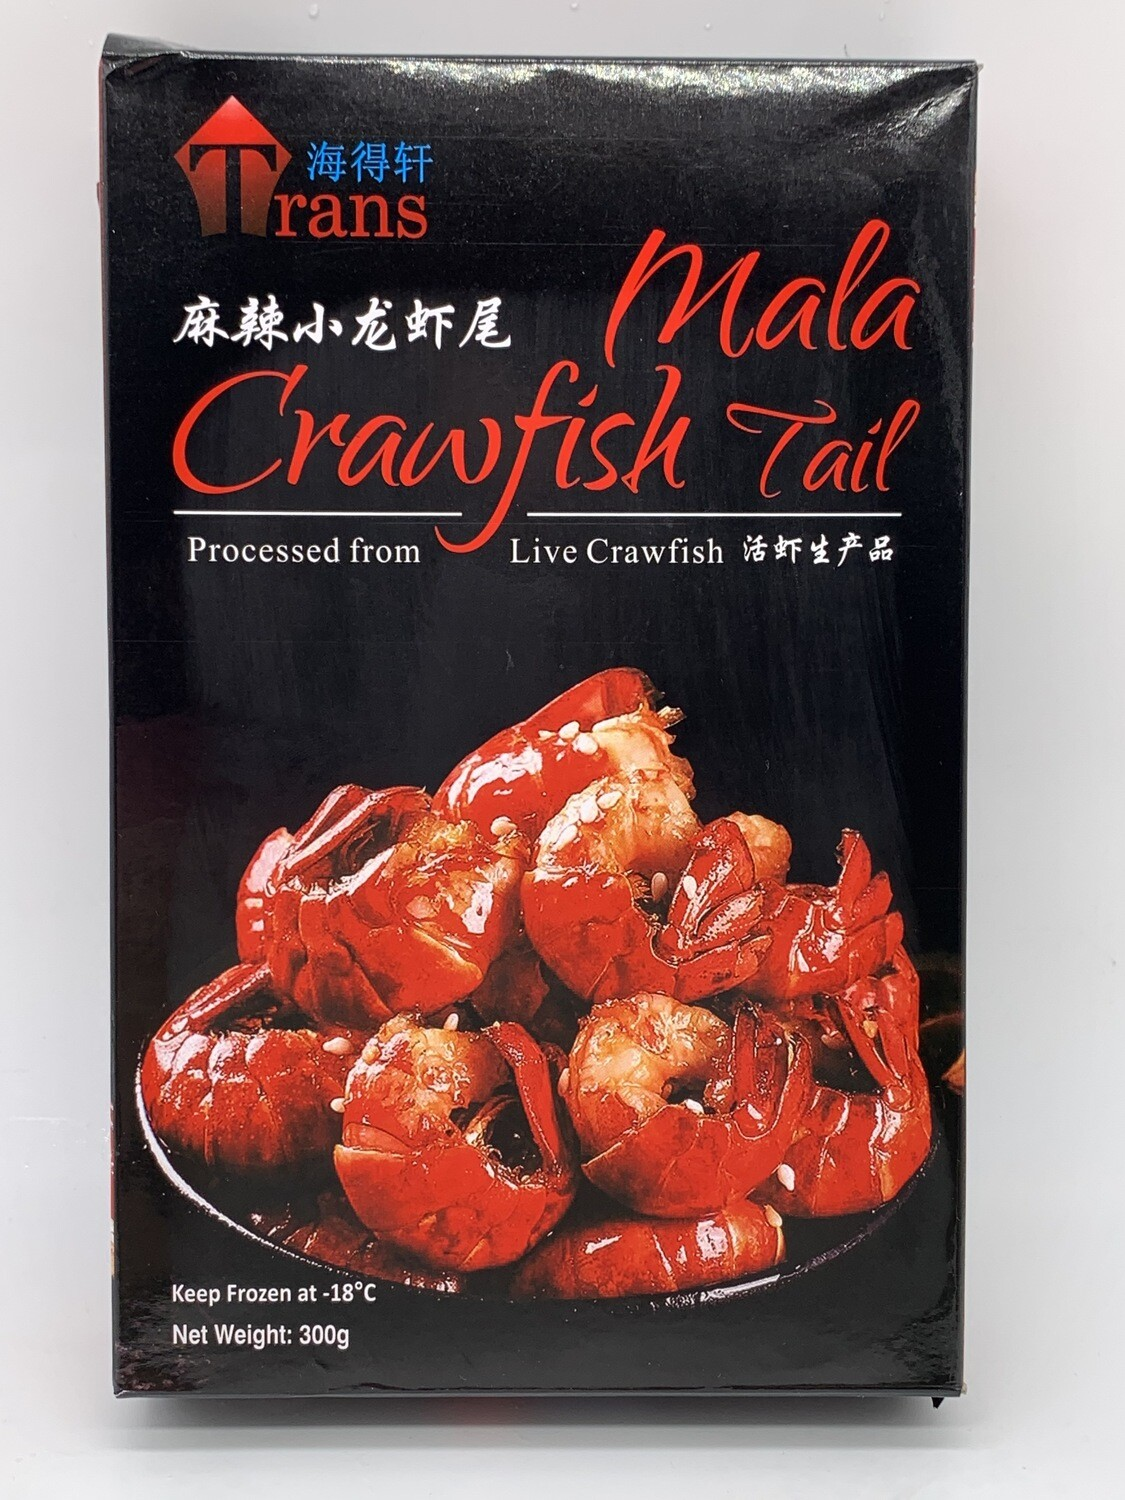 Pan Royal Frozen Cooked Mala Crawfish Tail (麻辣小龙虾尾) 300g